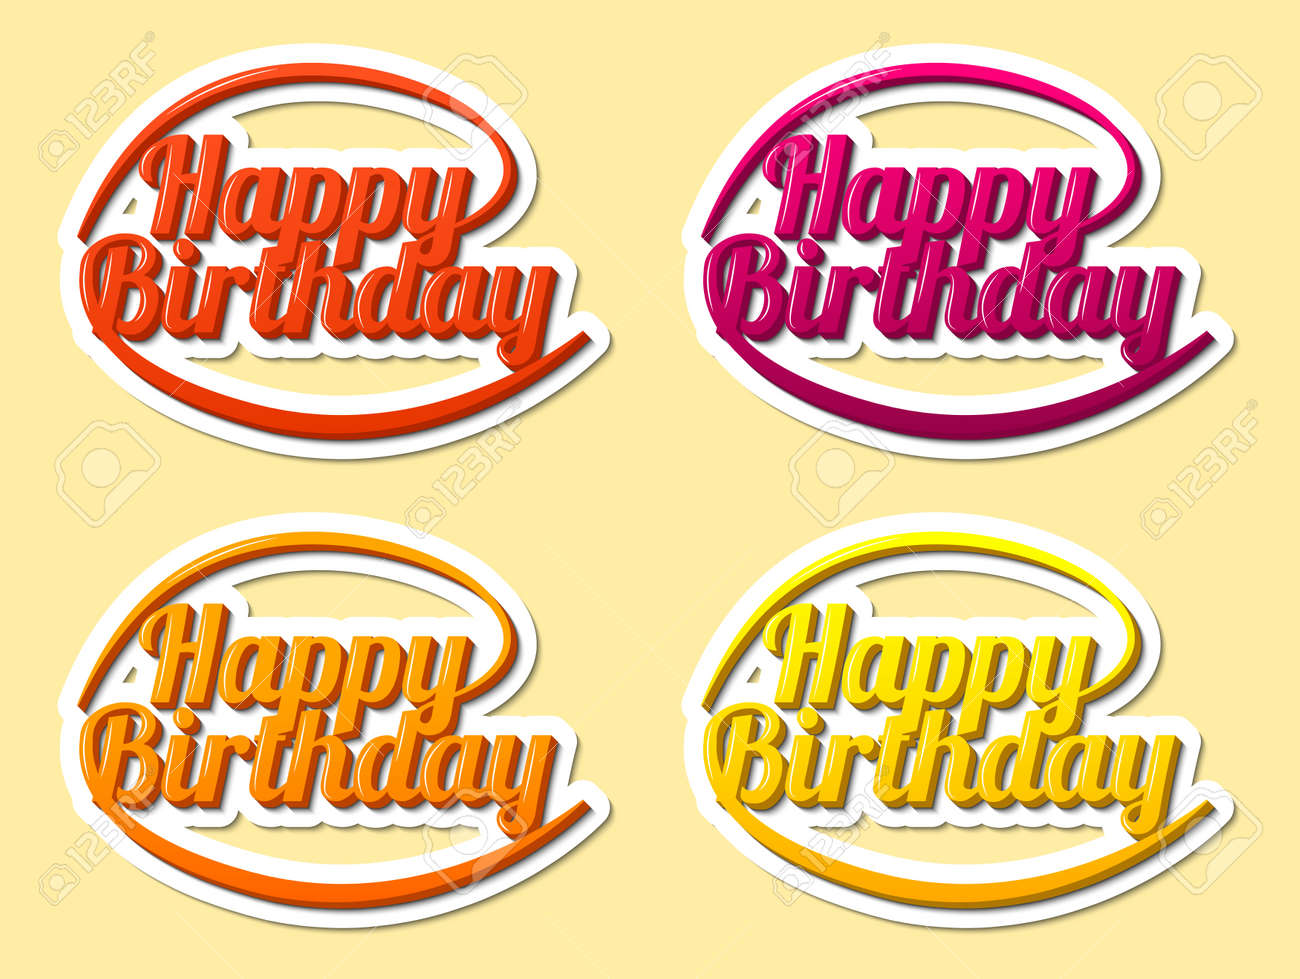 Happy birthday hand lettering modern text style sticker stock vector 70734276